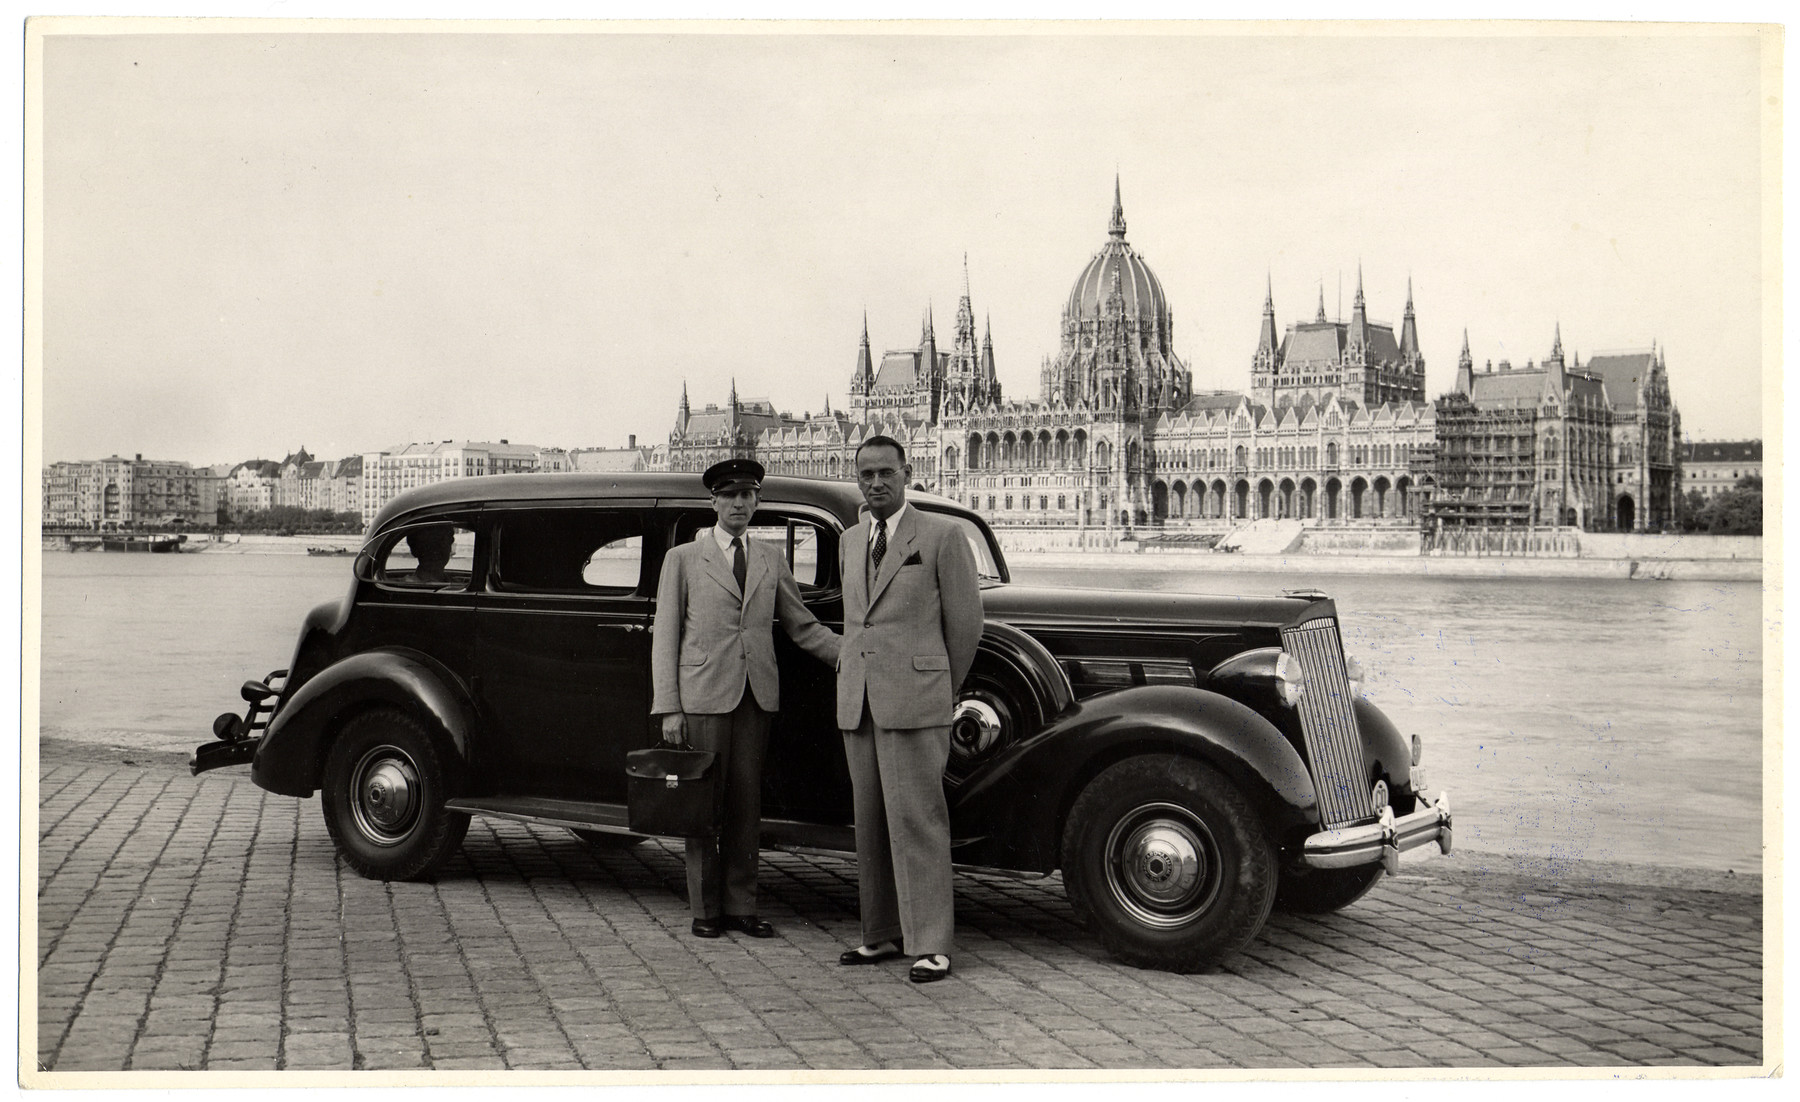 Swiss Consul General, Carl Lutz, poses with his driver, Charles Szluha, along the bank of the Danube River across from the parliament building in wartime Budapest.